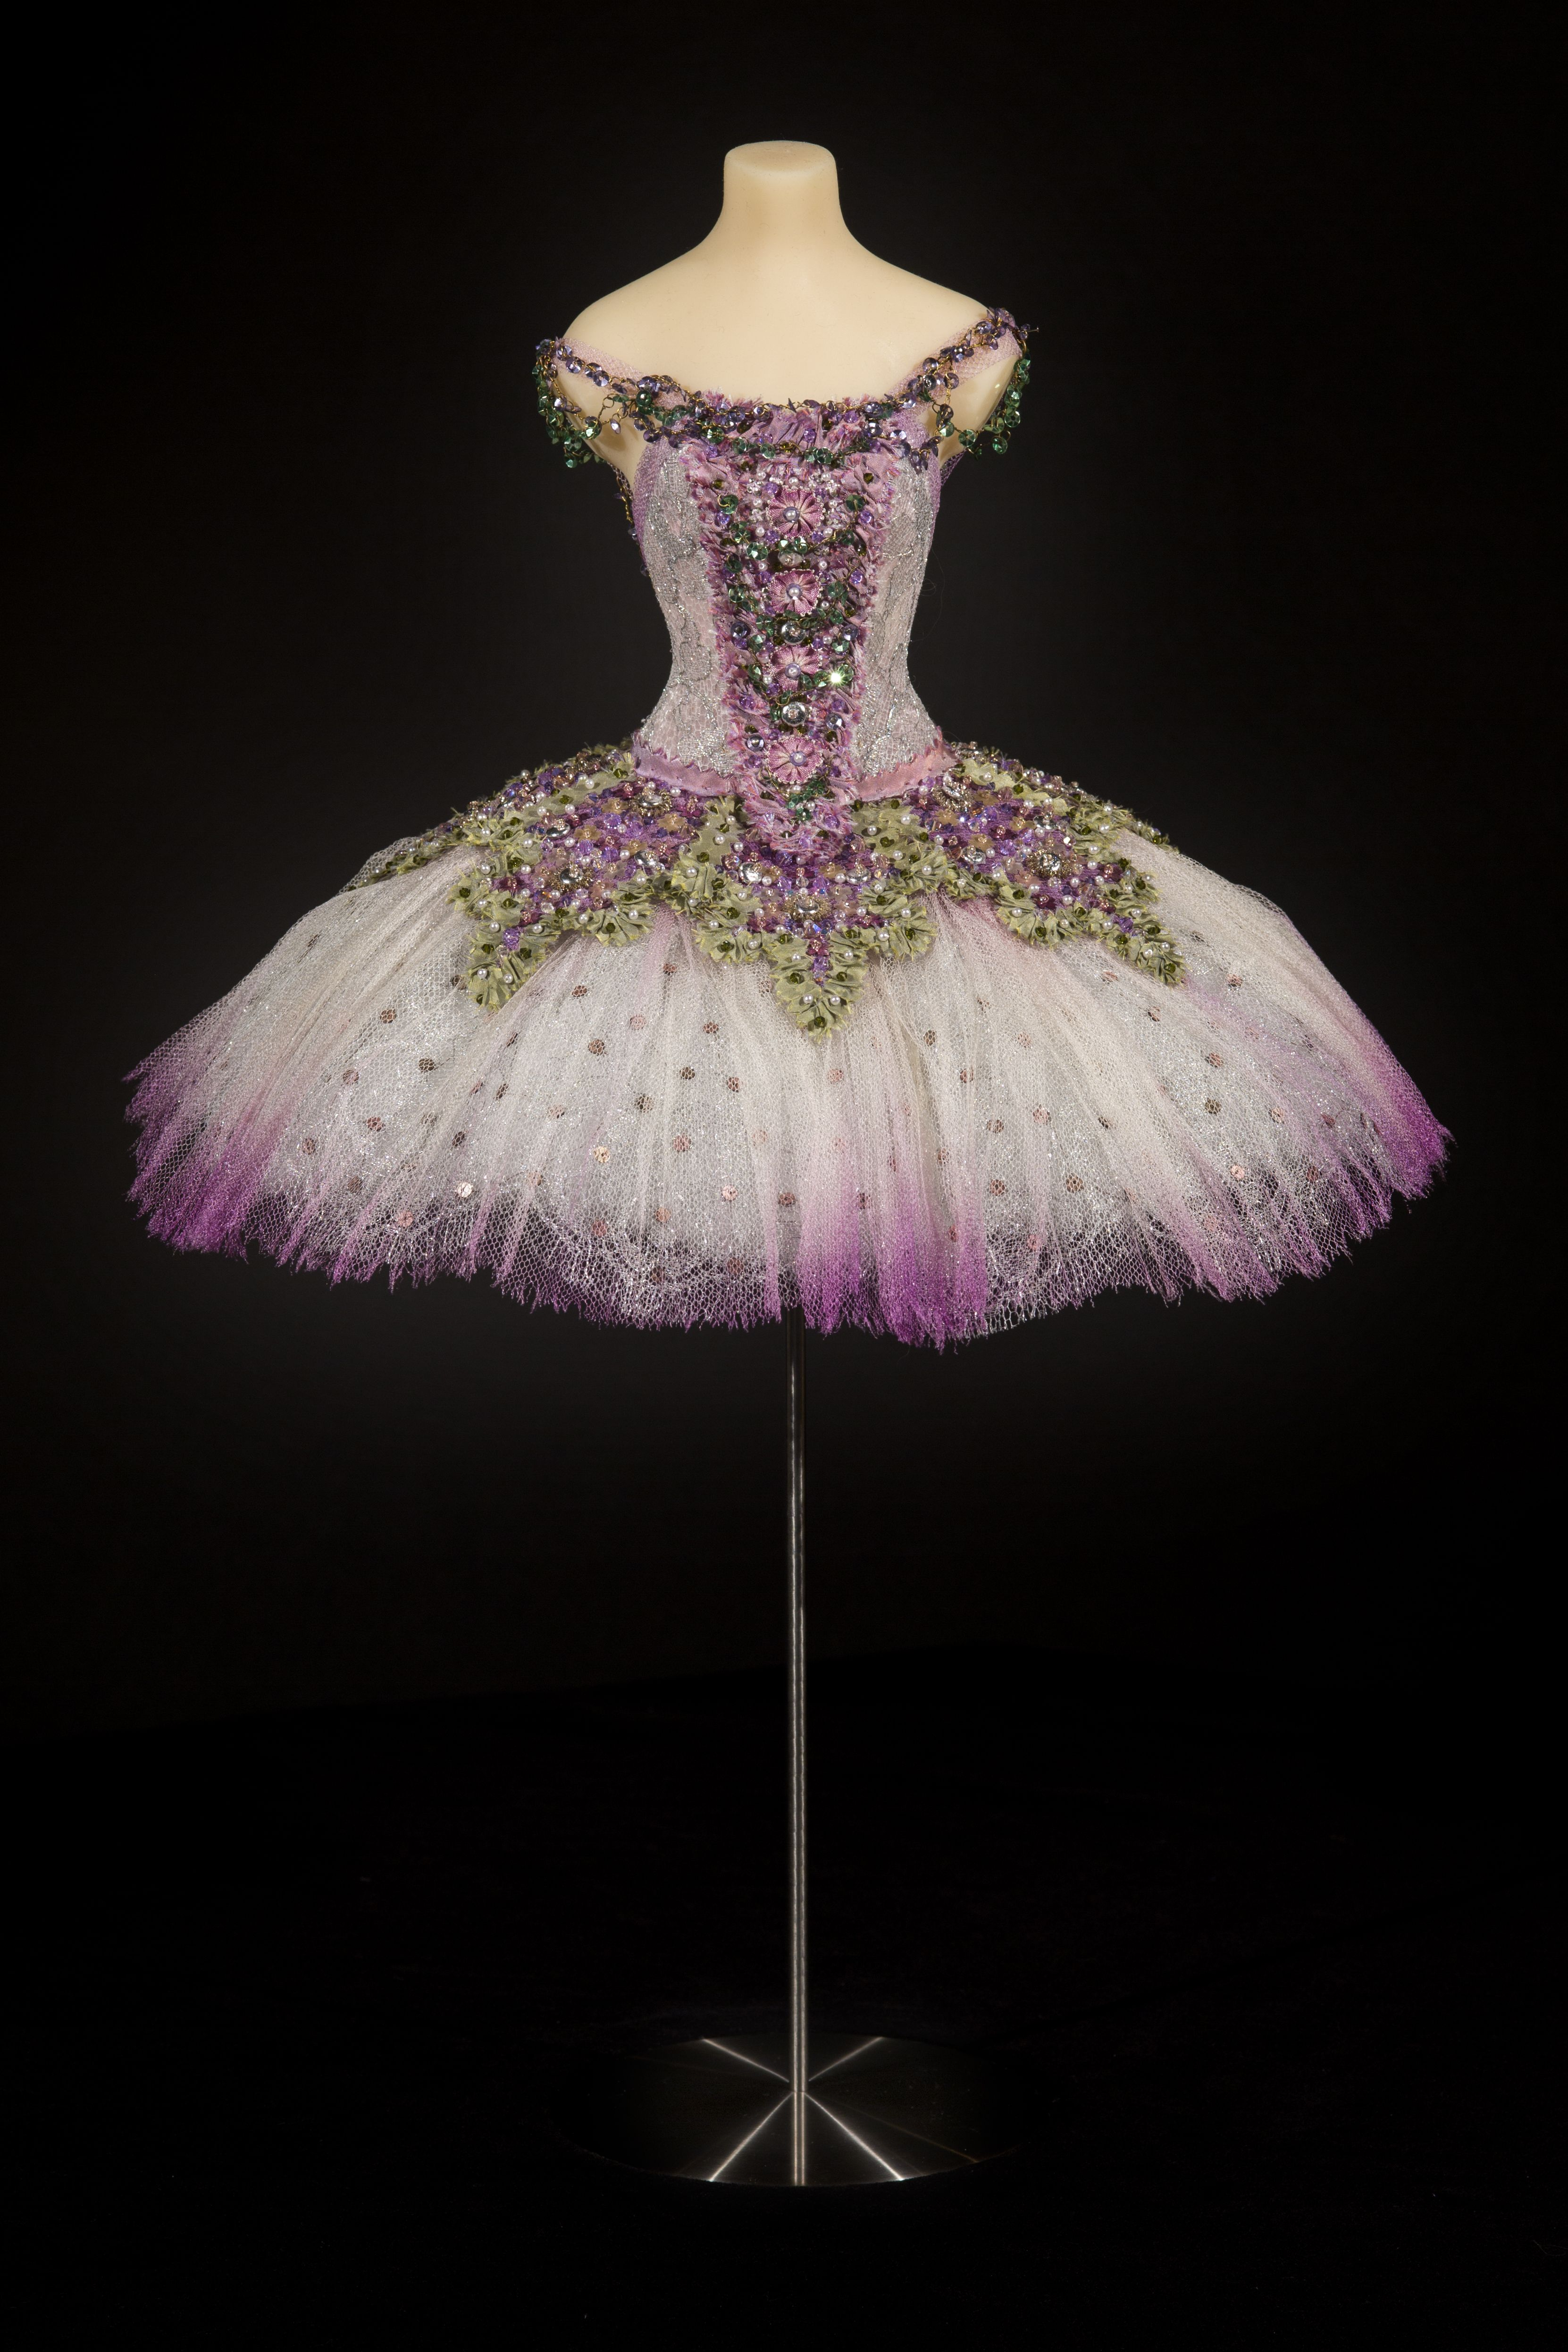 6c07ee72096d Our 'Lilac Fairy' miniature ballet costume. A highly decorative and  glamorous tutu, with appliqued skirt and bodice panels edged in shot silk  taffeta, ...